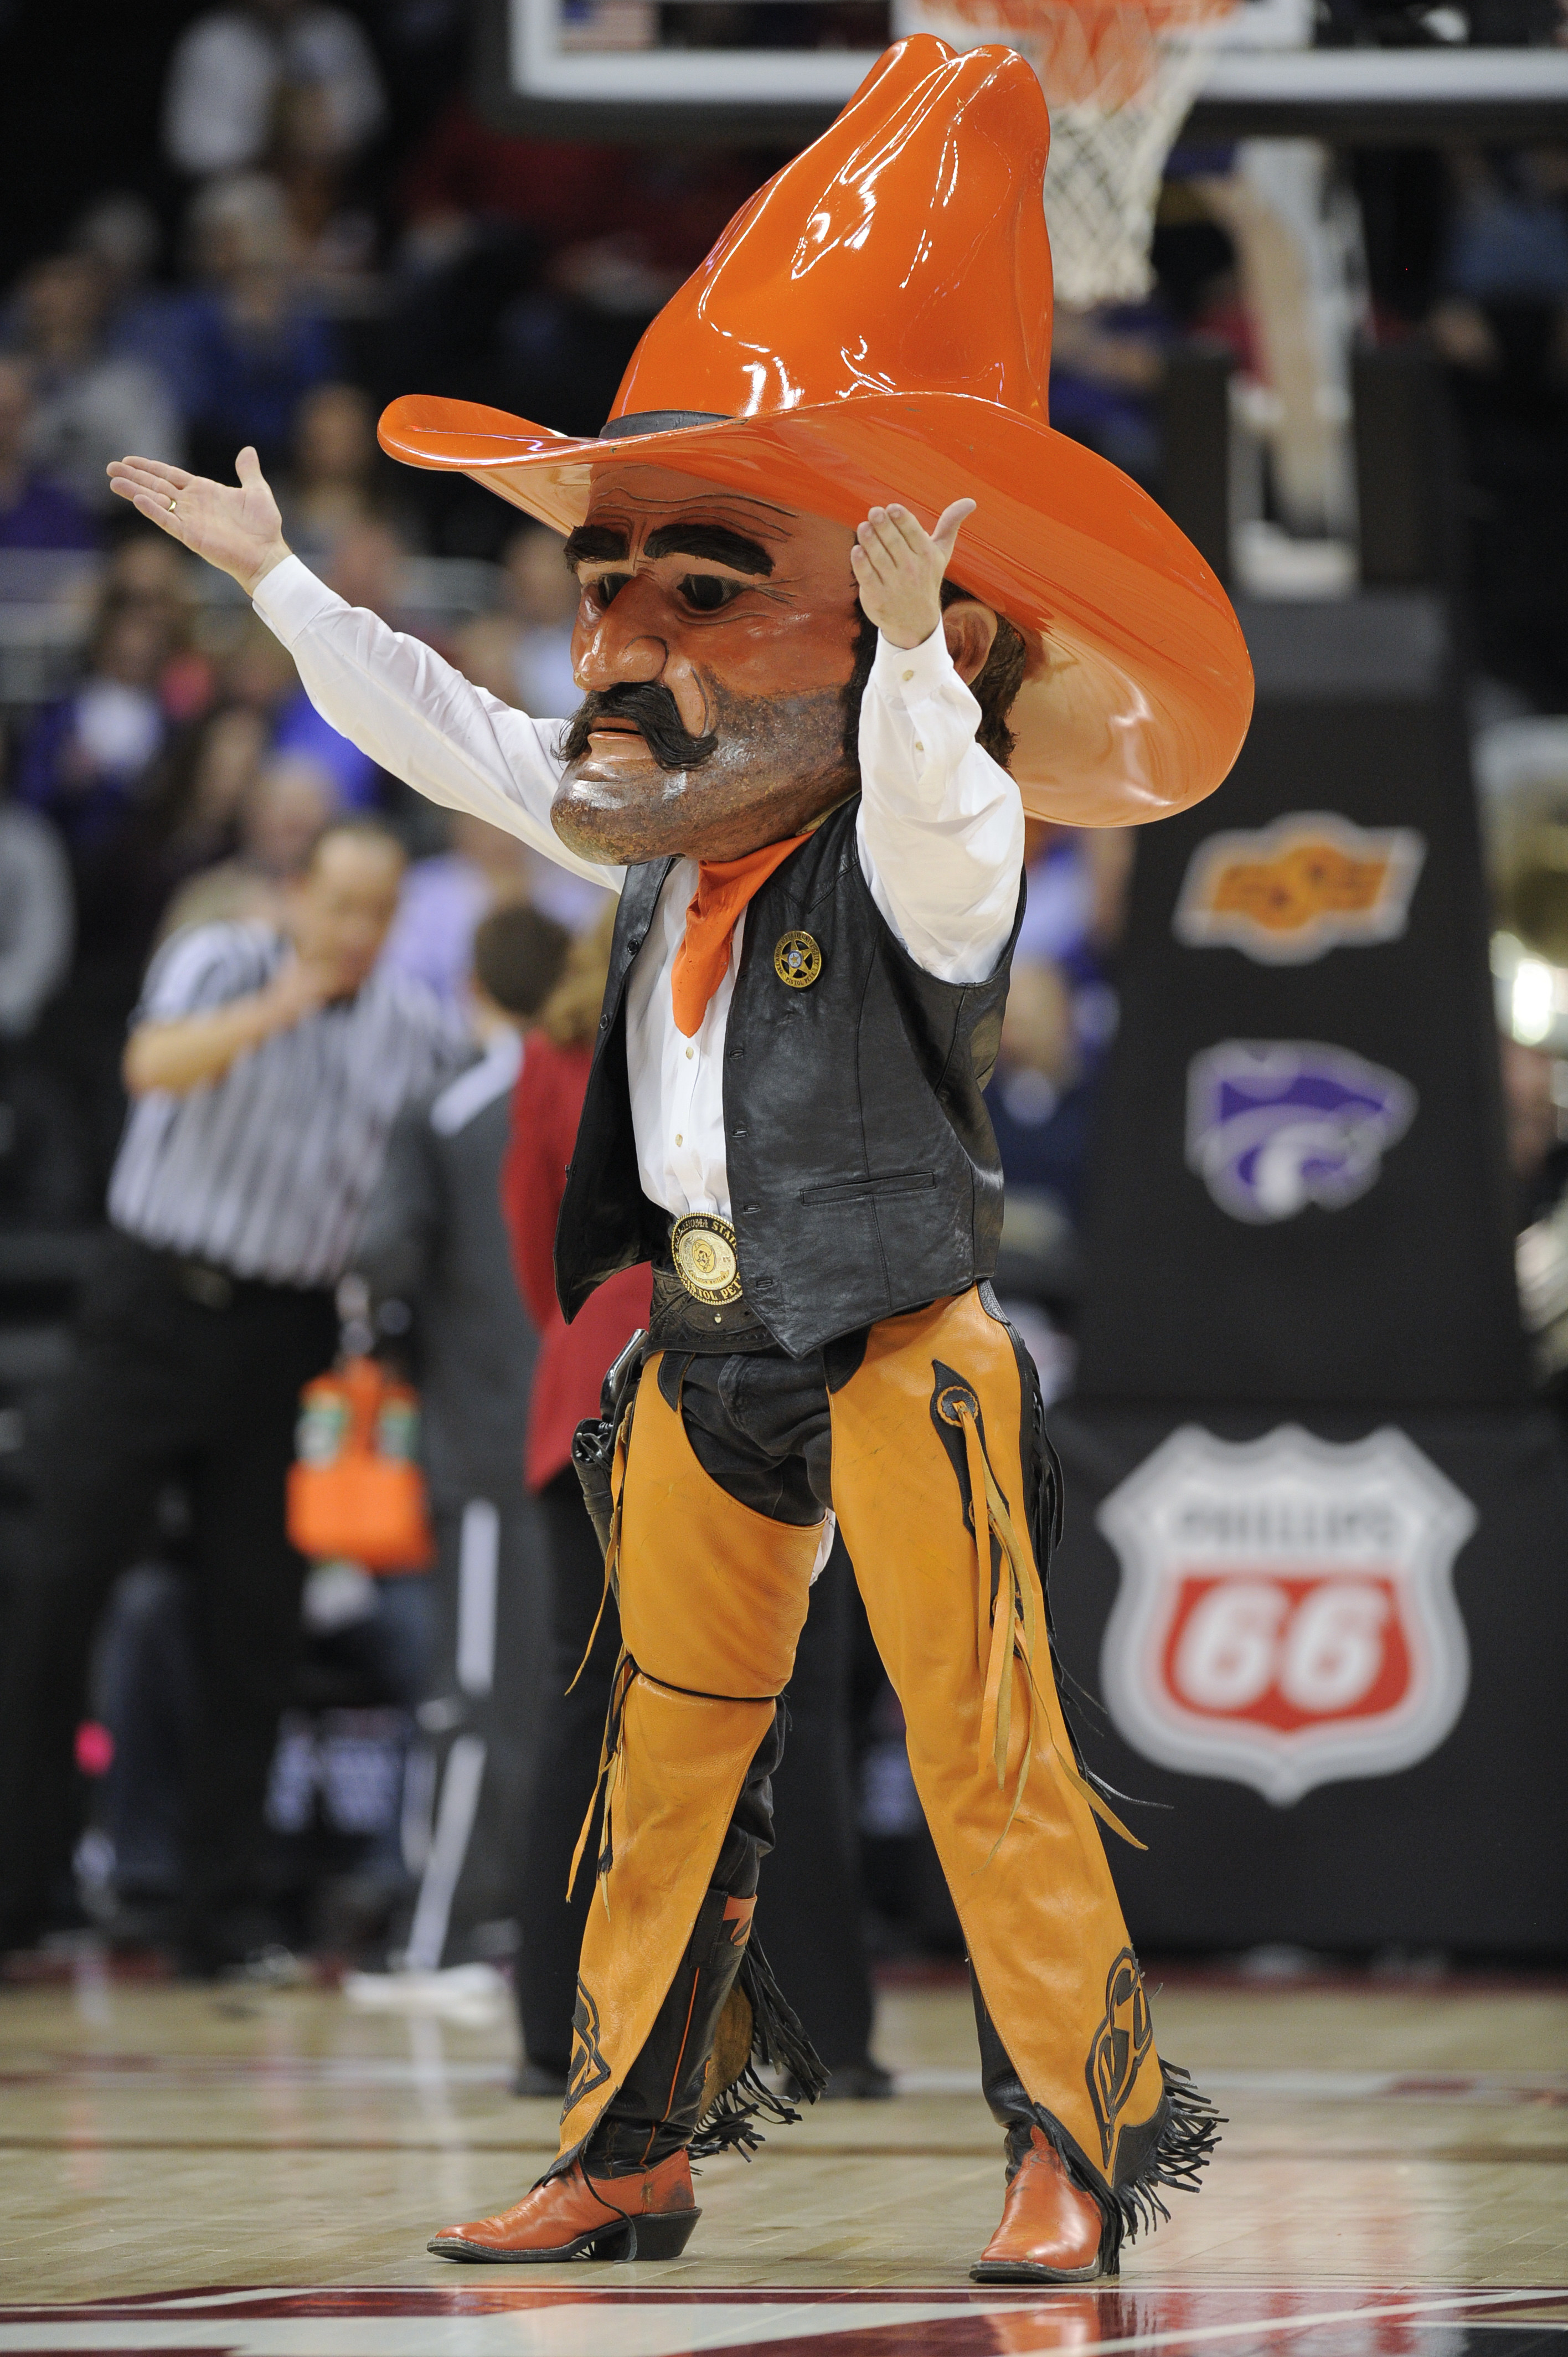 Cowboy mascot with giant head and cowboy hat.